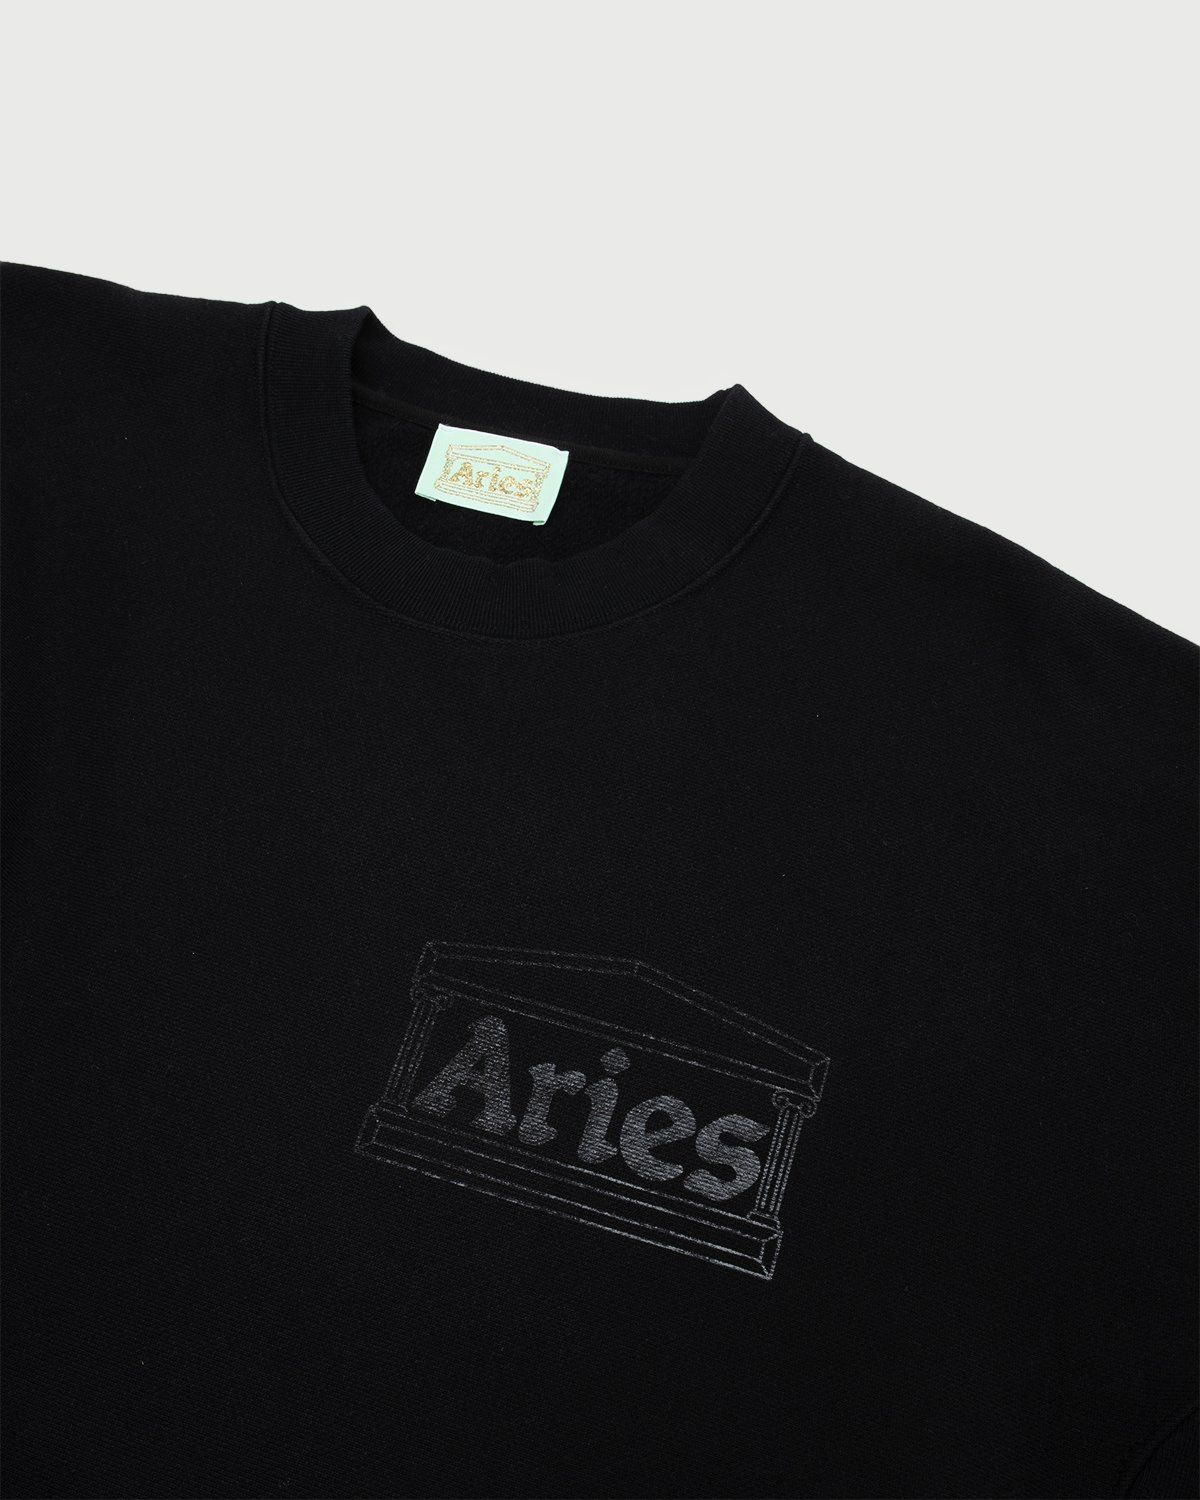 Aries - Premium Temple Sweatshirt Black - Image 2